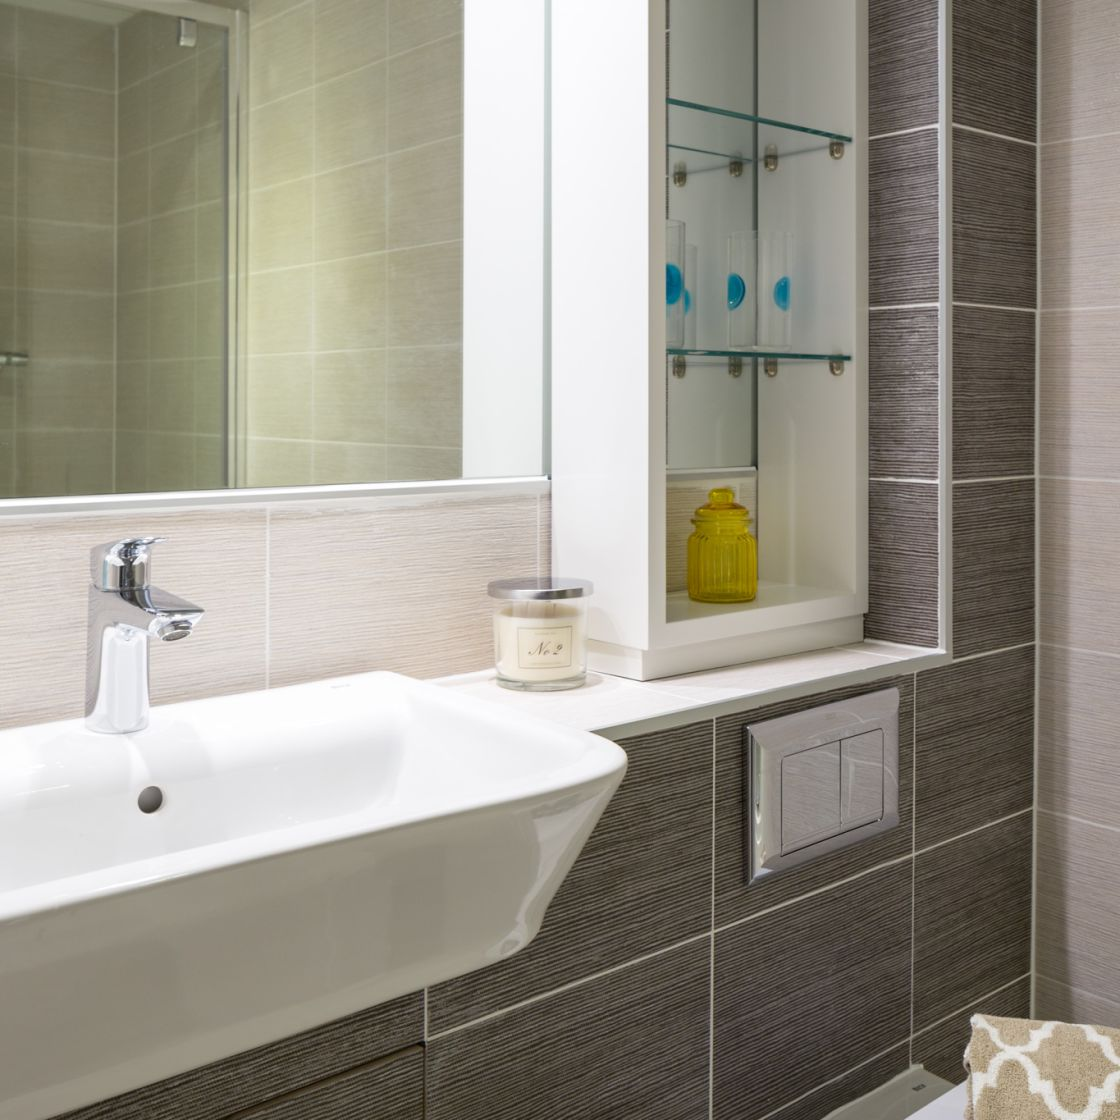 Neo Student Apartment in Leeds with En-suite Bathroom. IconInc, The Glassworks